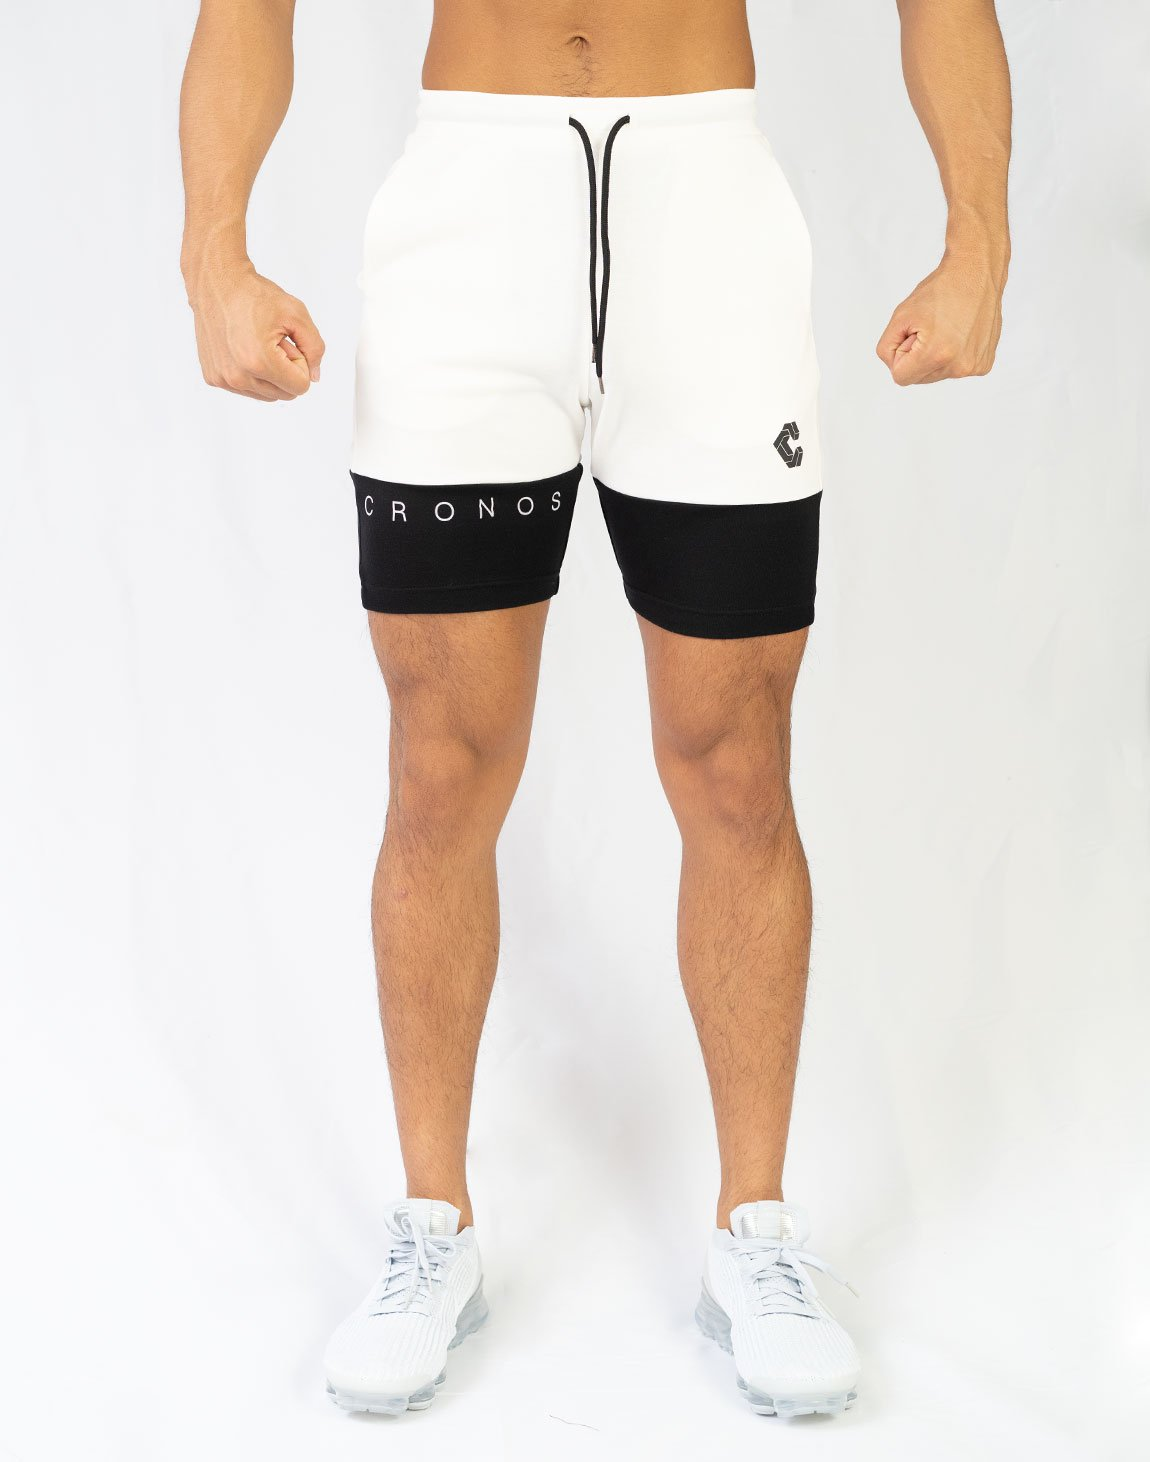 CRONOS TWO COLOR SHORTS【WHITE】